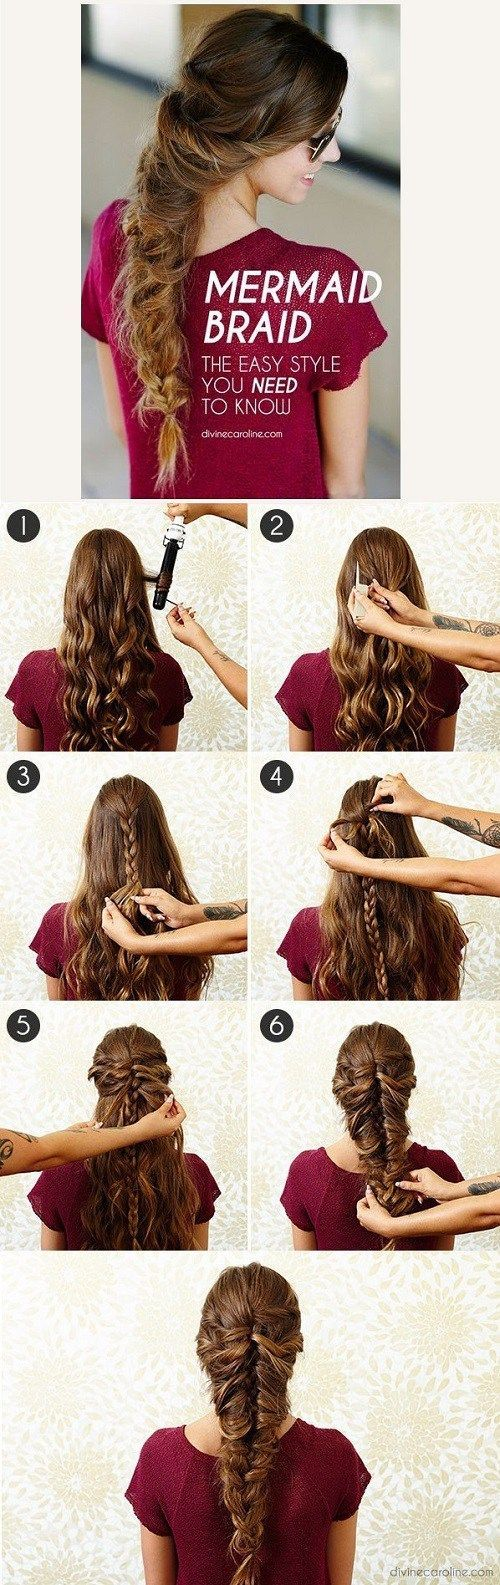 10 Easy & Gorgeous Hair Tutorials!